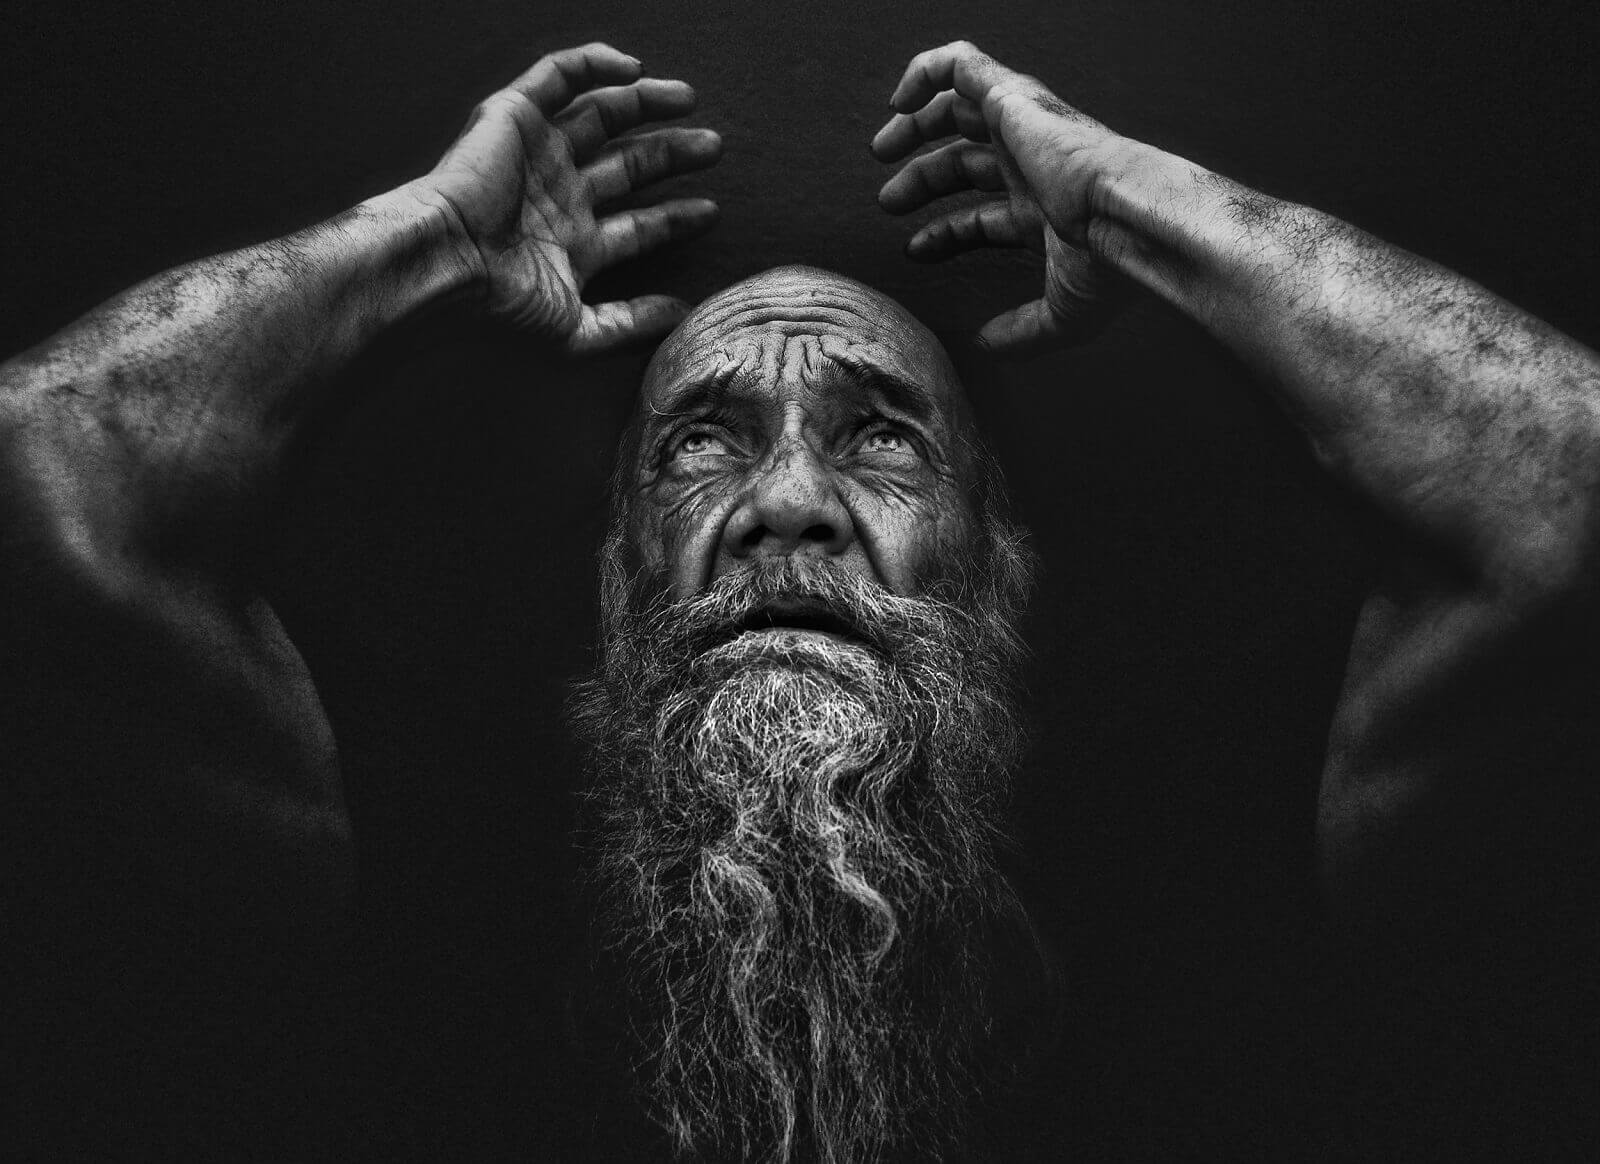 Lee Jeffries Black and white photography